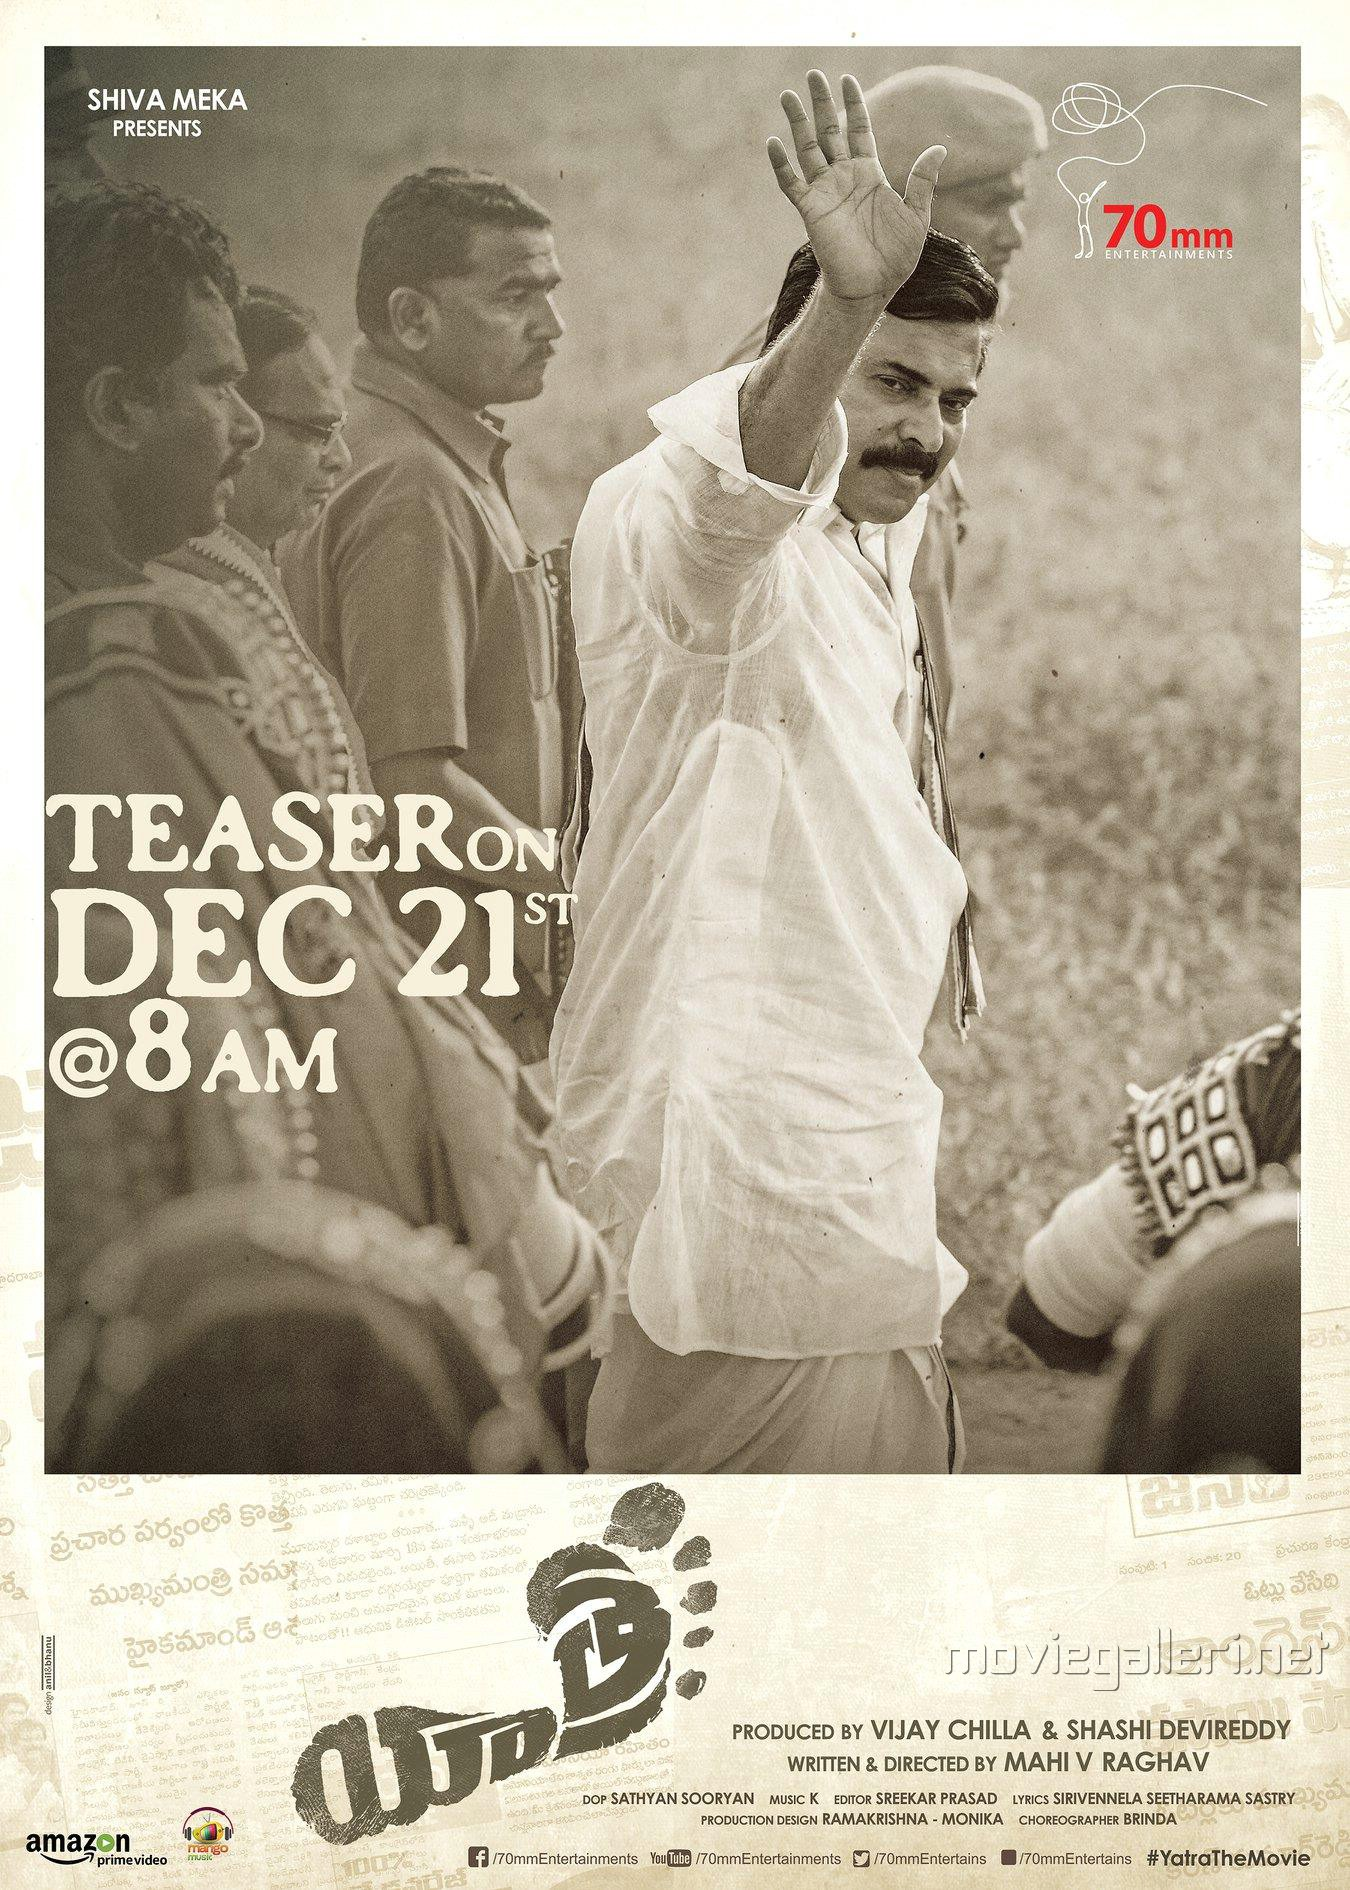 Mammootty Yatra teaser on December 21st Posters HD | New